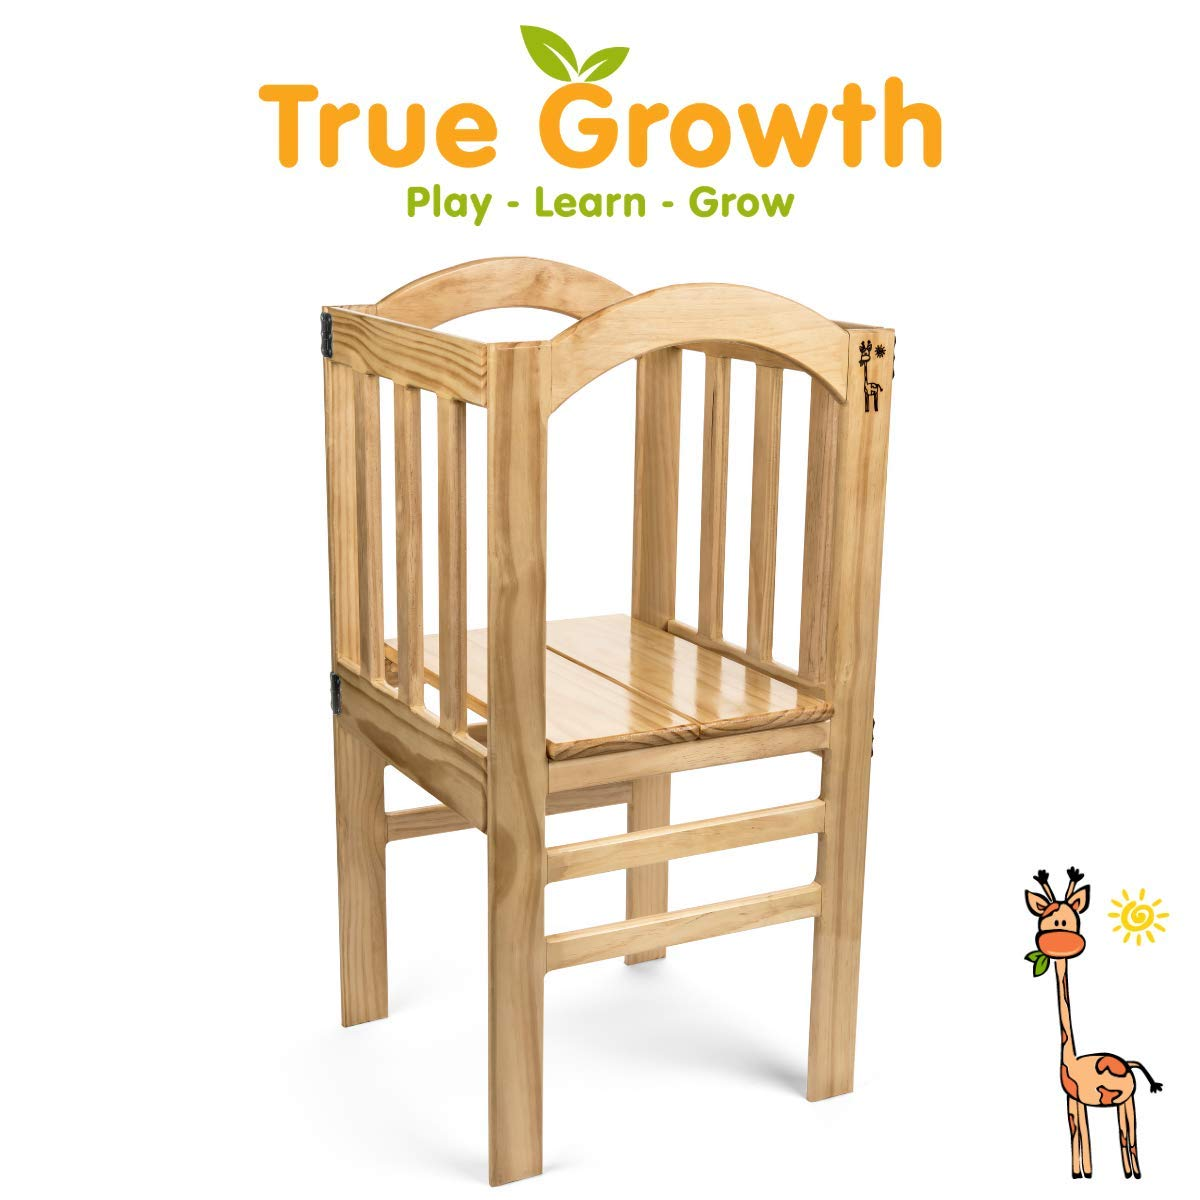 True Growth - True Tot Tower - Kids or Toddler Step Stool - Wood Construction - Varnished by True Growth Play - Learn - Grow